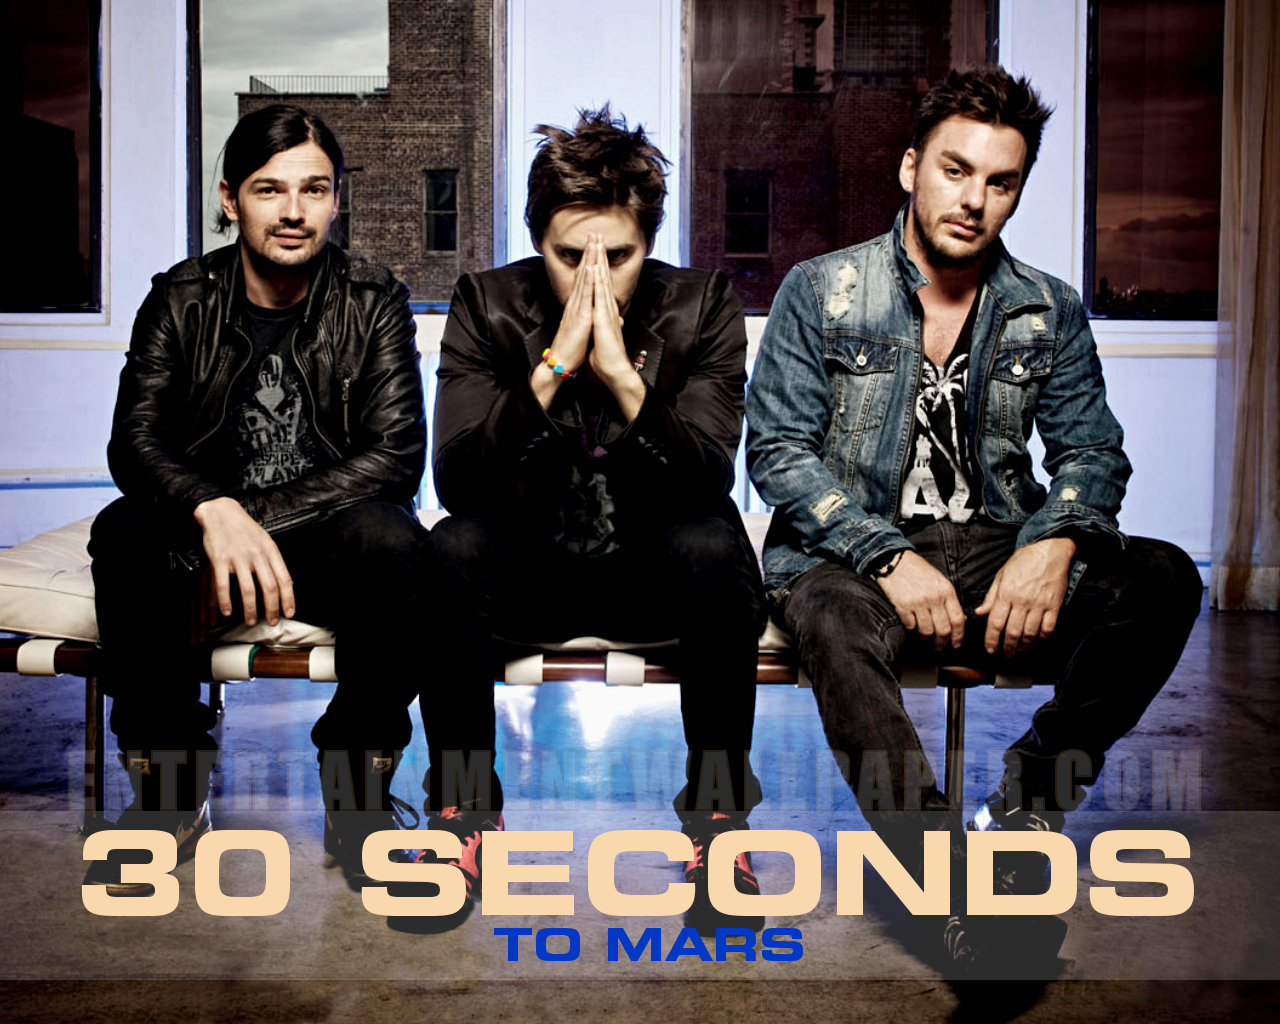 Os Inofensivos: 30 Seconds to Mars